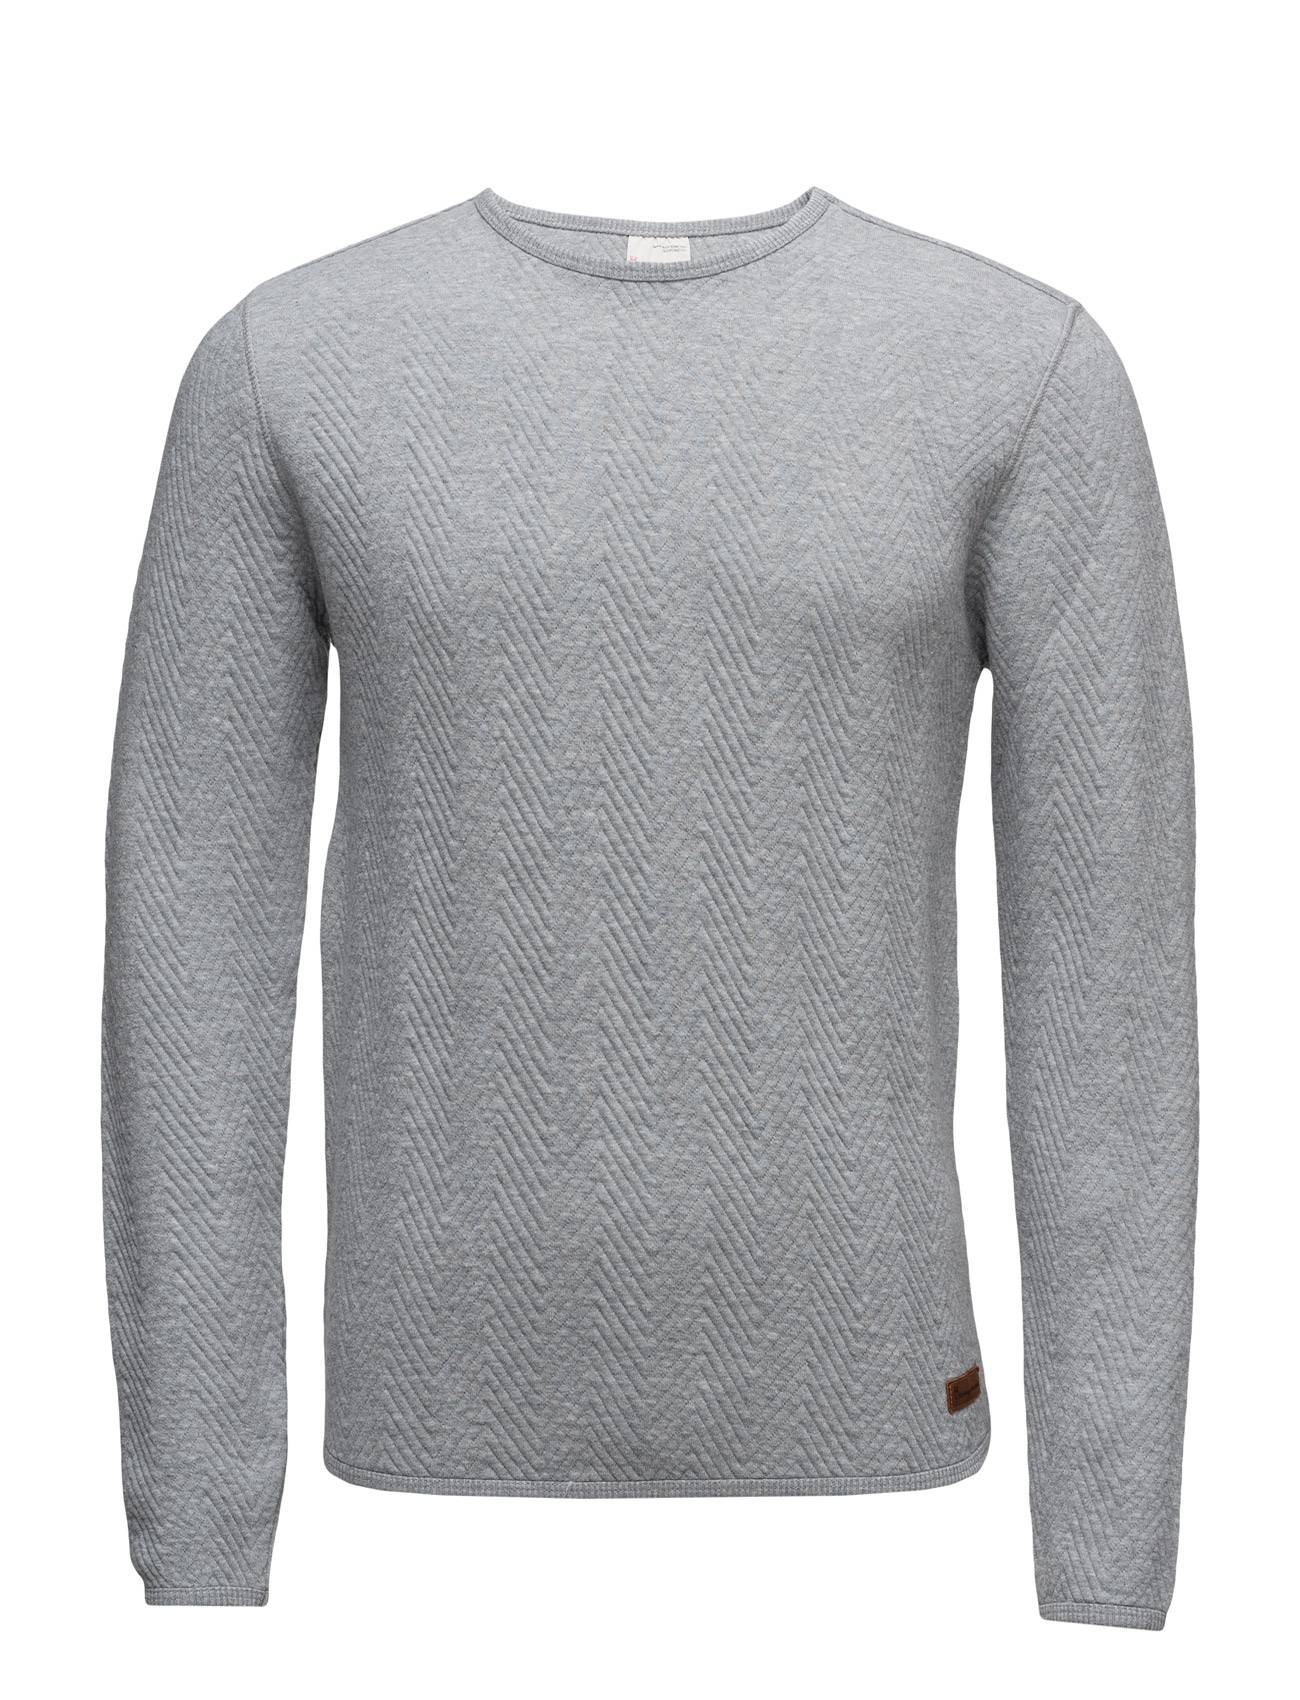 Knowledge Cotton Apparel Quited Sweat - Ocs